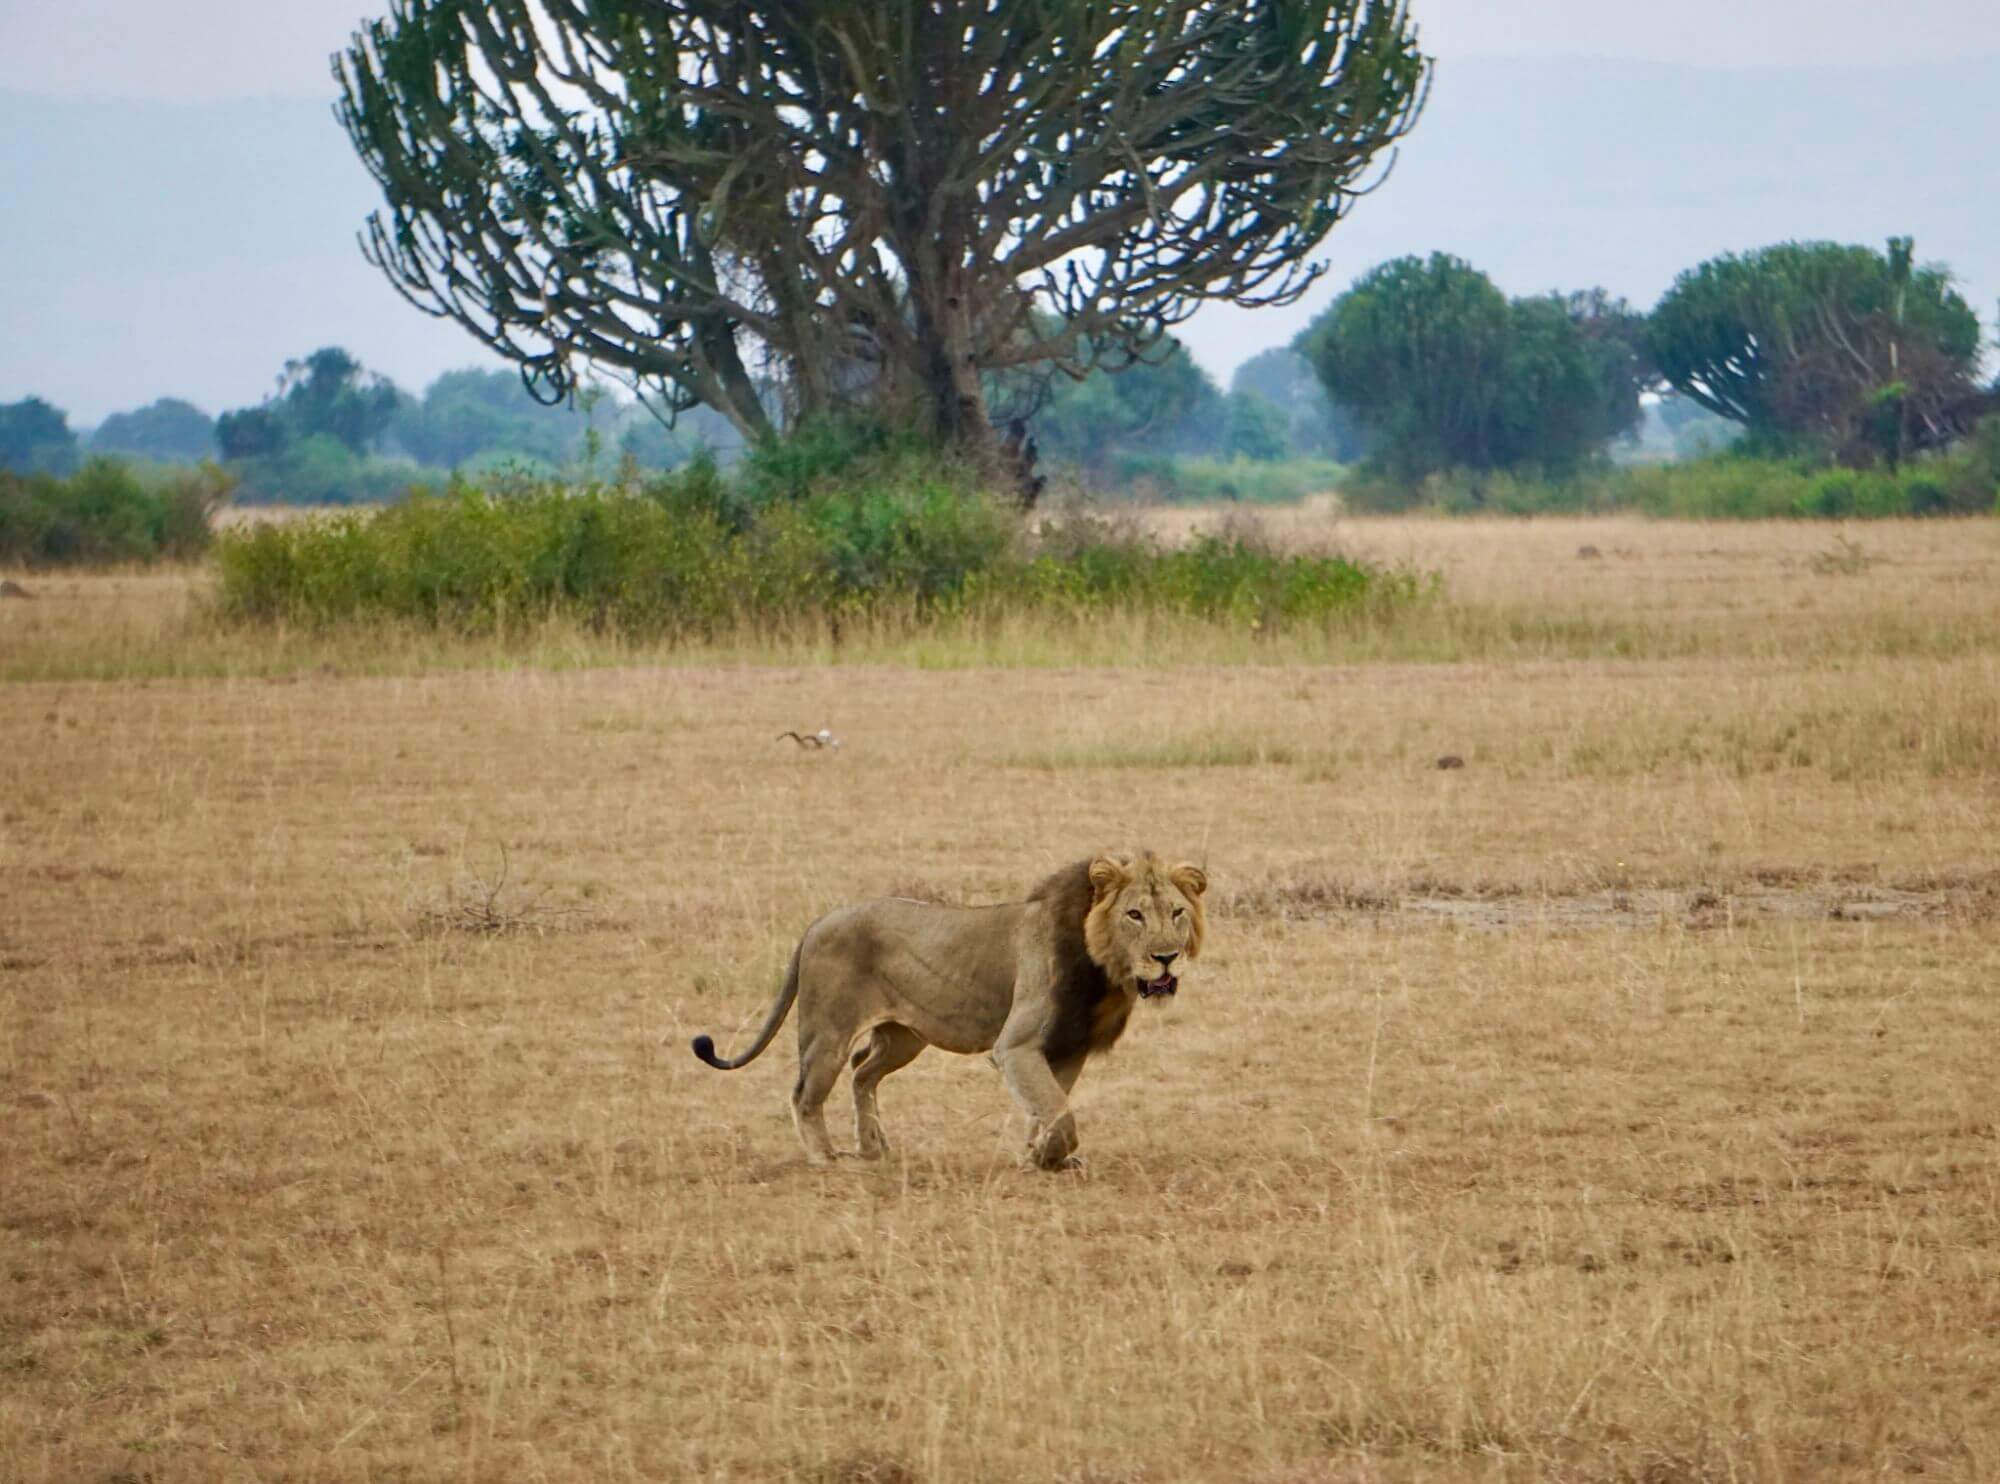 Lion in Queen Elizabeth National Park Uganda